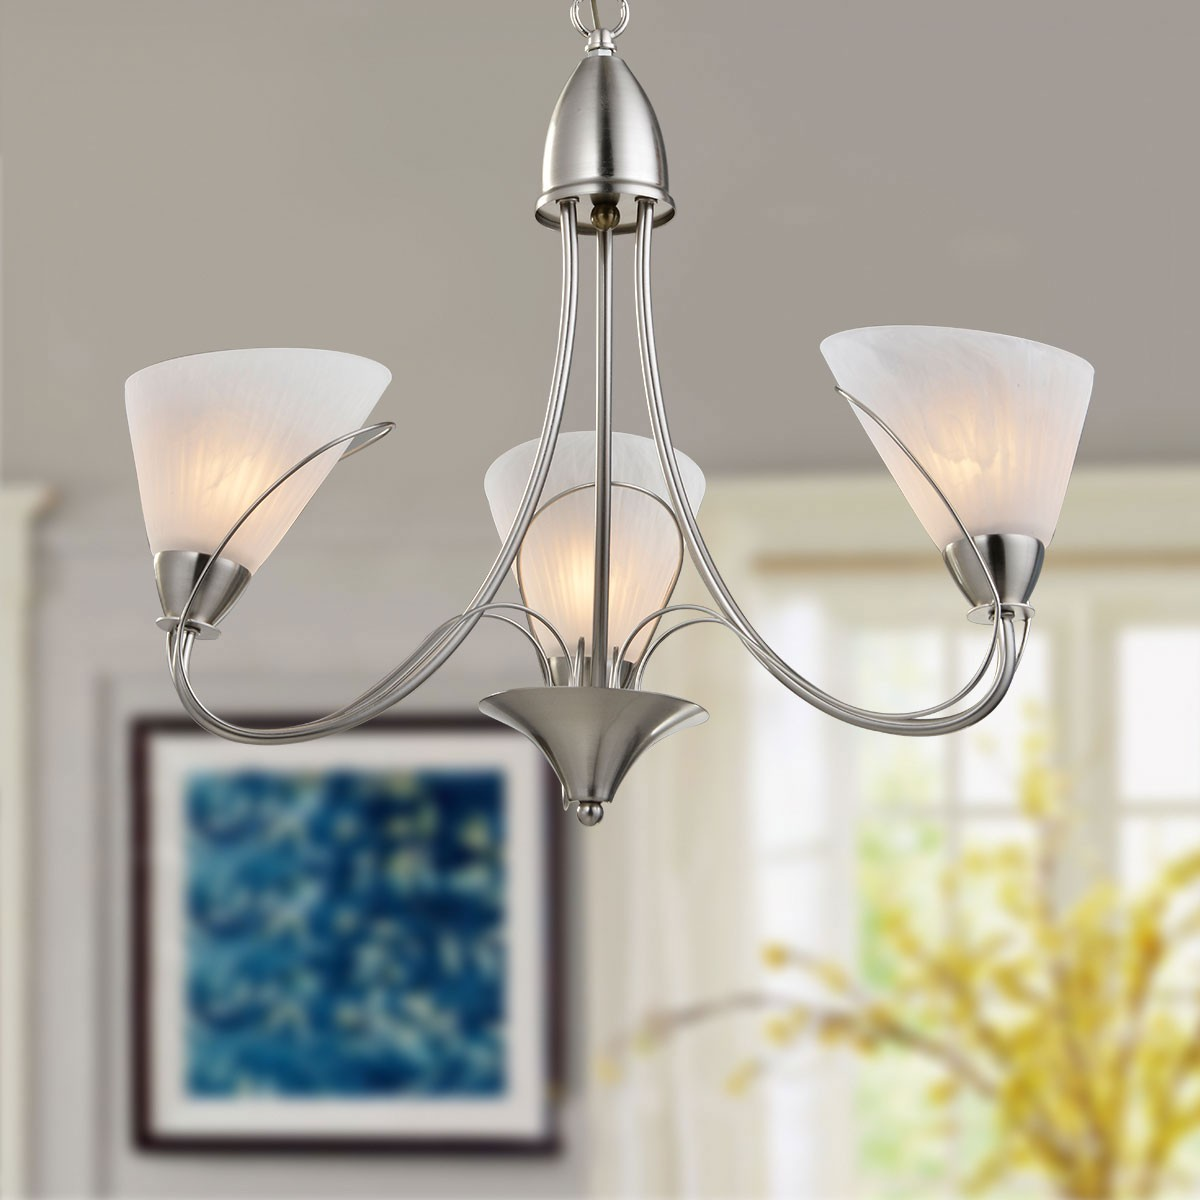 3 Light Silver Iron Modern Chandelier With Glass Shades Hkp31262